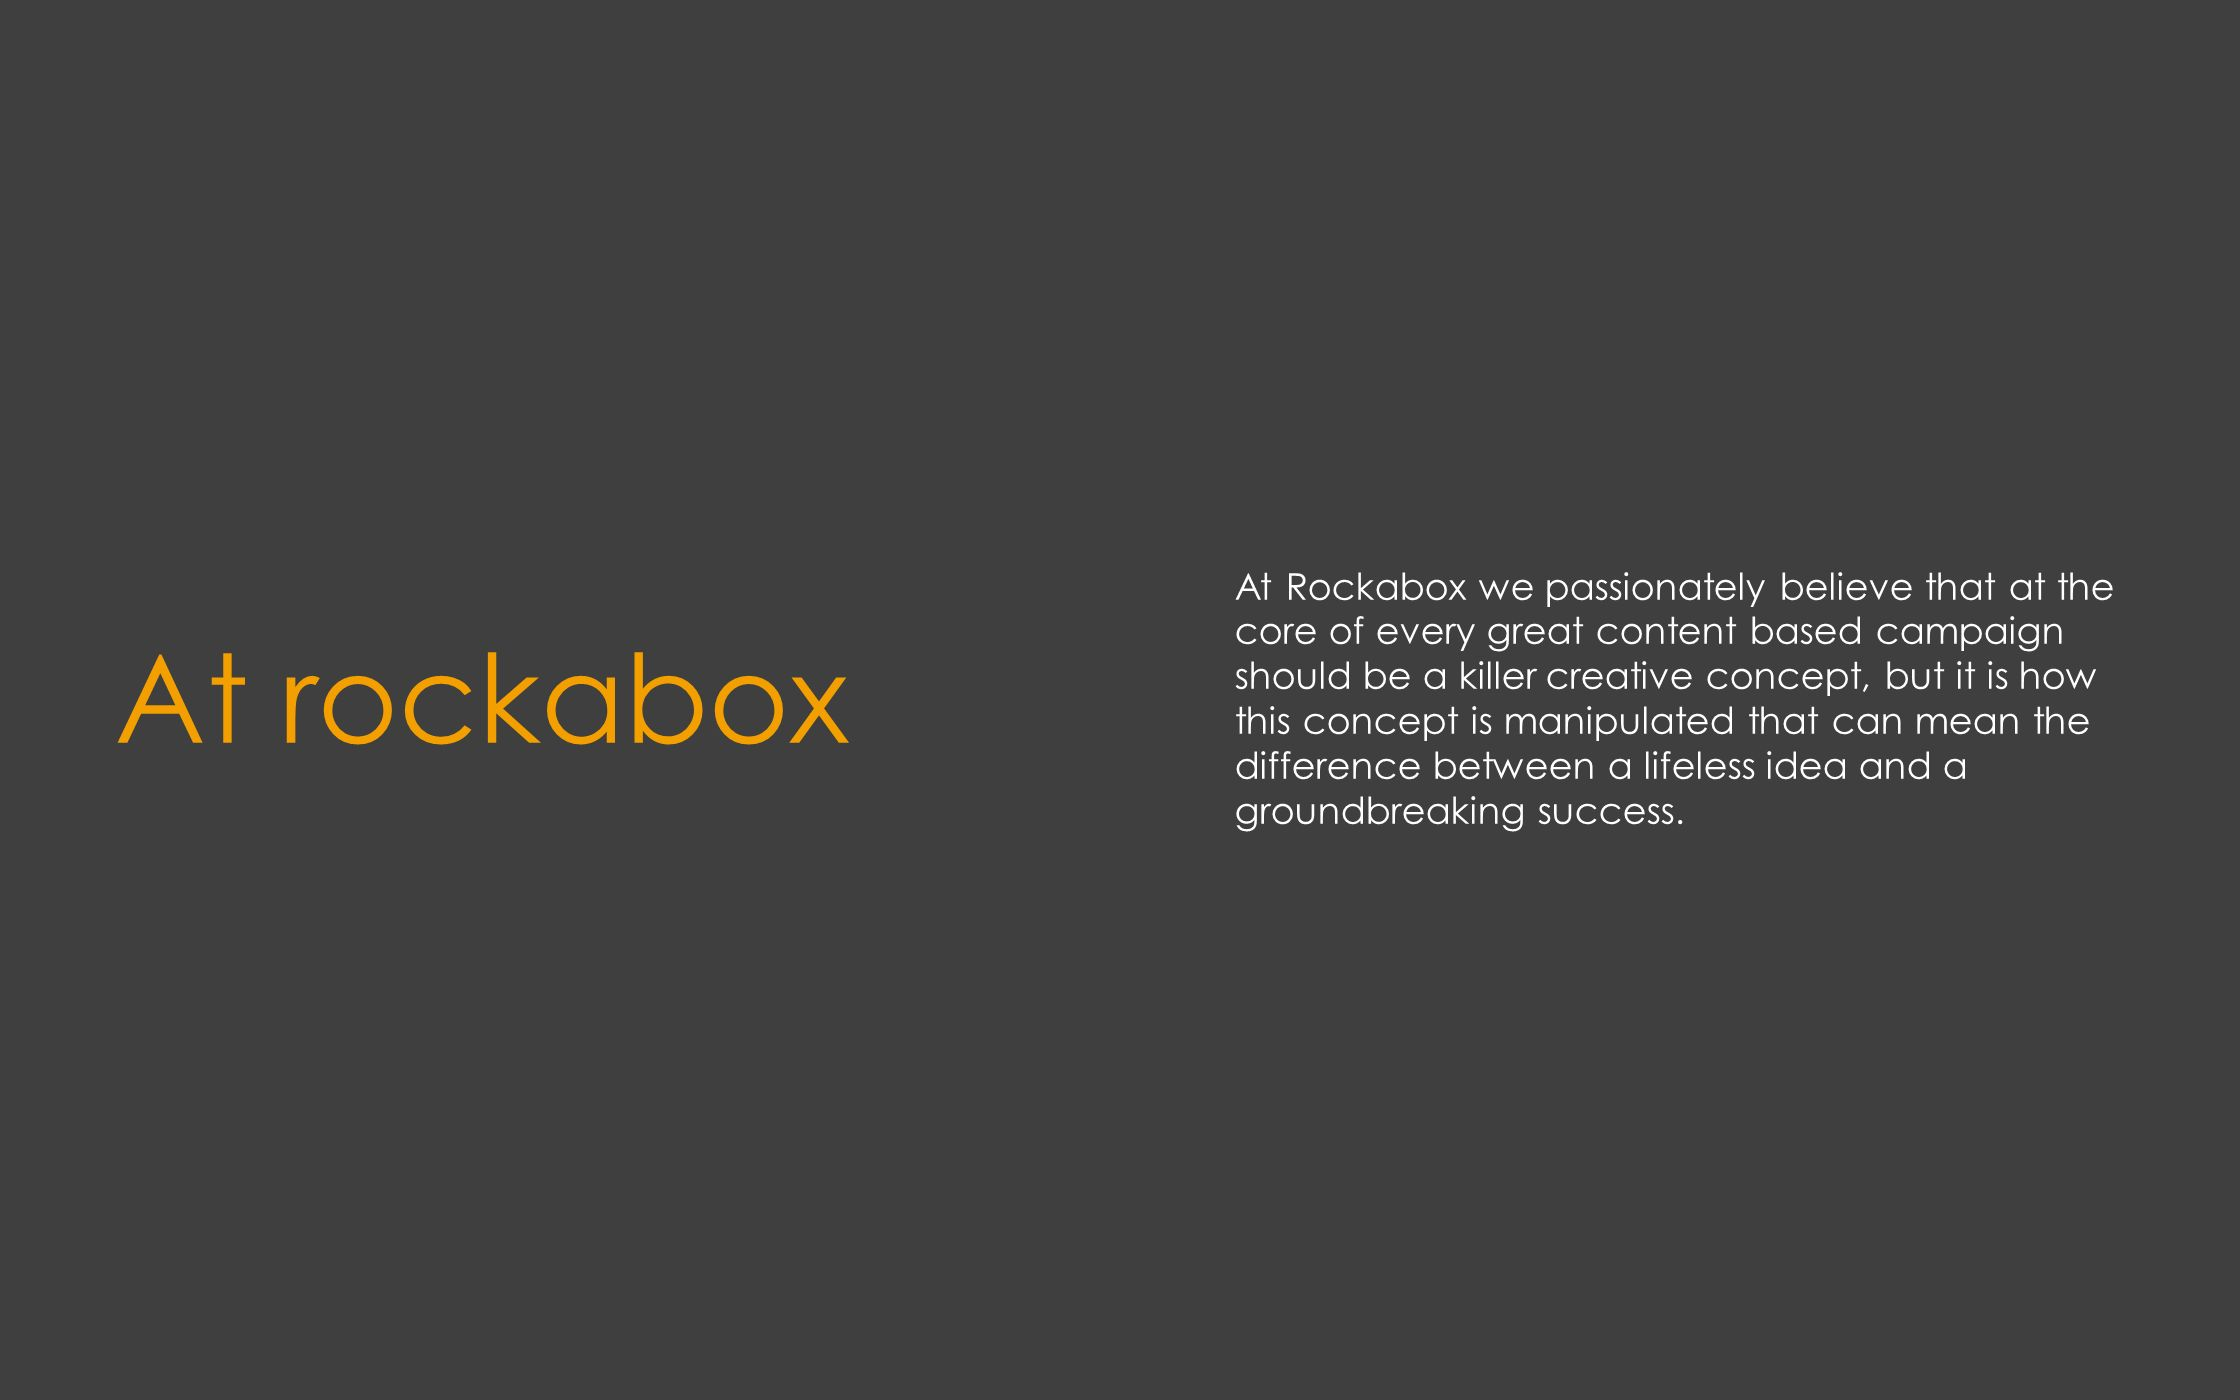 At rockabox At Rockabox we passionately believe that at the core of every great content based campaign should be a killer creative concept, but it is how this concept is manipulated that can mean the difference between a lifeless idea and a groundbreaking success.